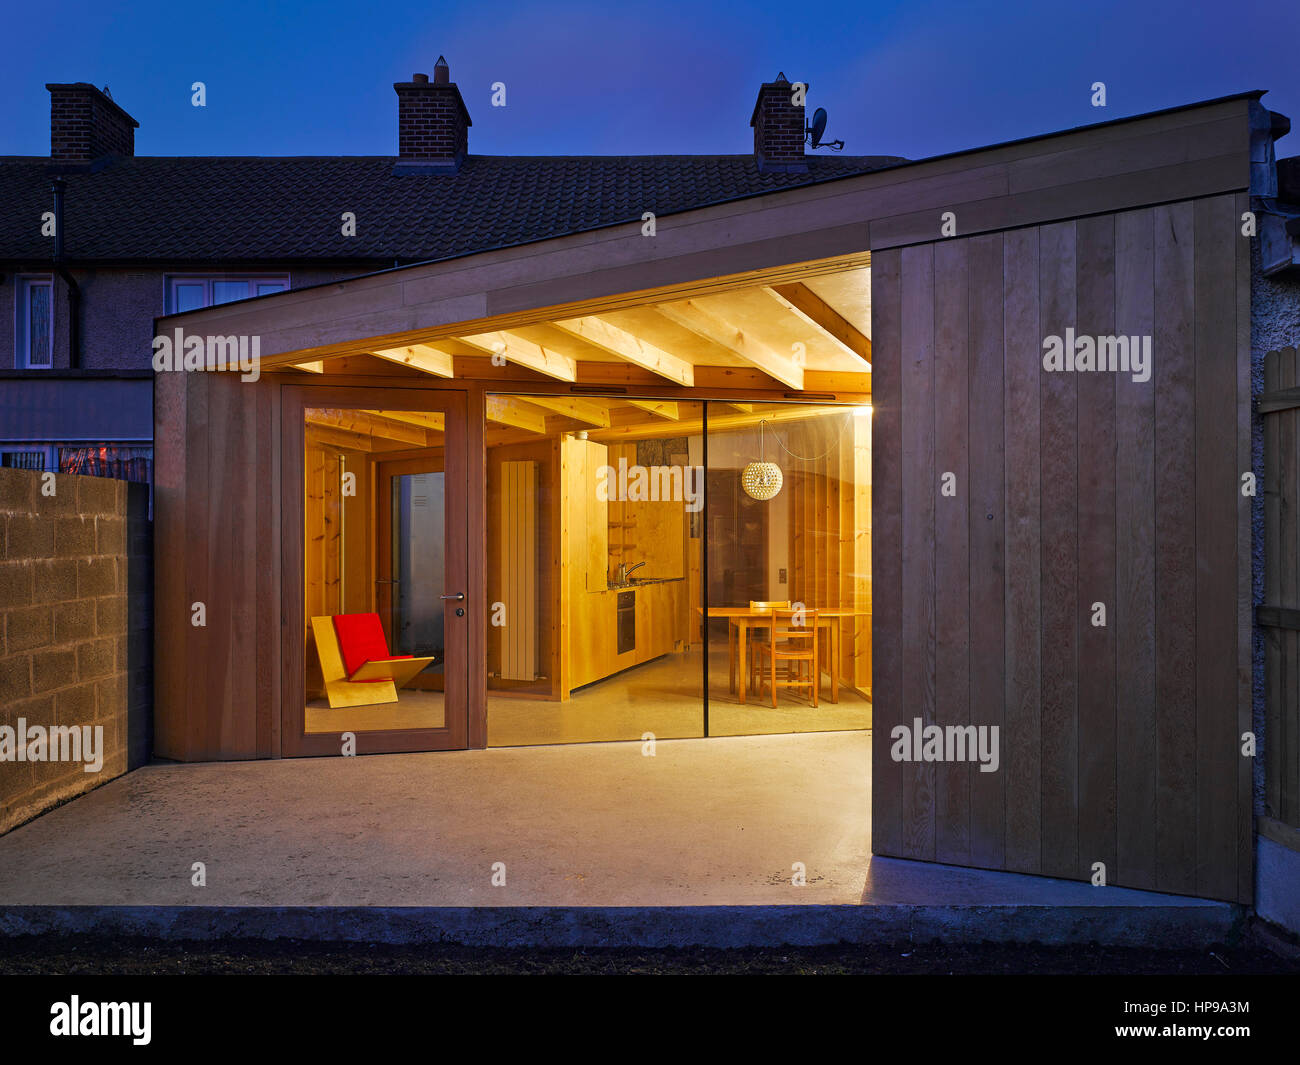 Exterior view at dusk showing interior lit by one light source. Rutland Avenue, Crumlin, Ireland. Architect: Eamon - Stock Image